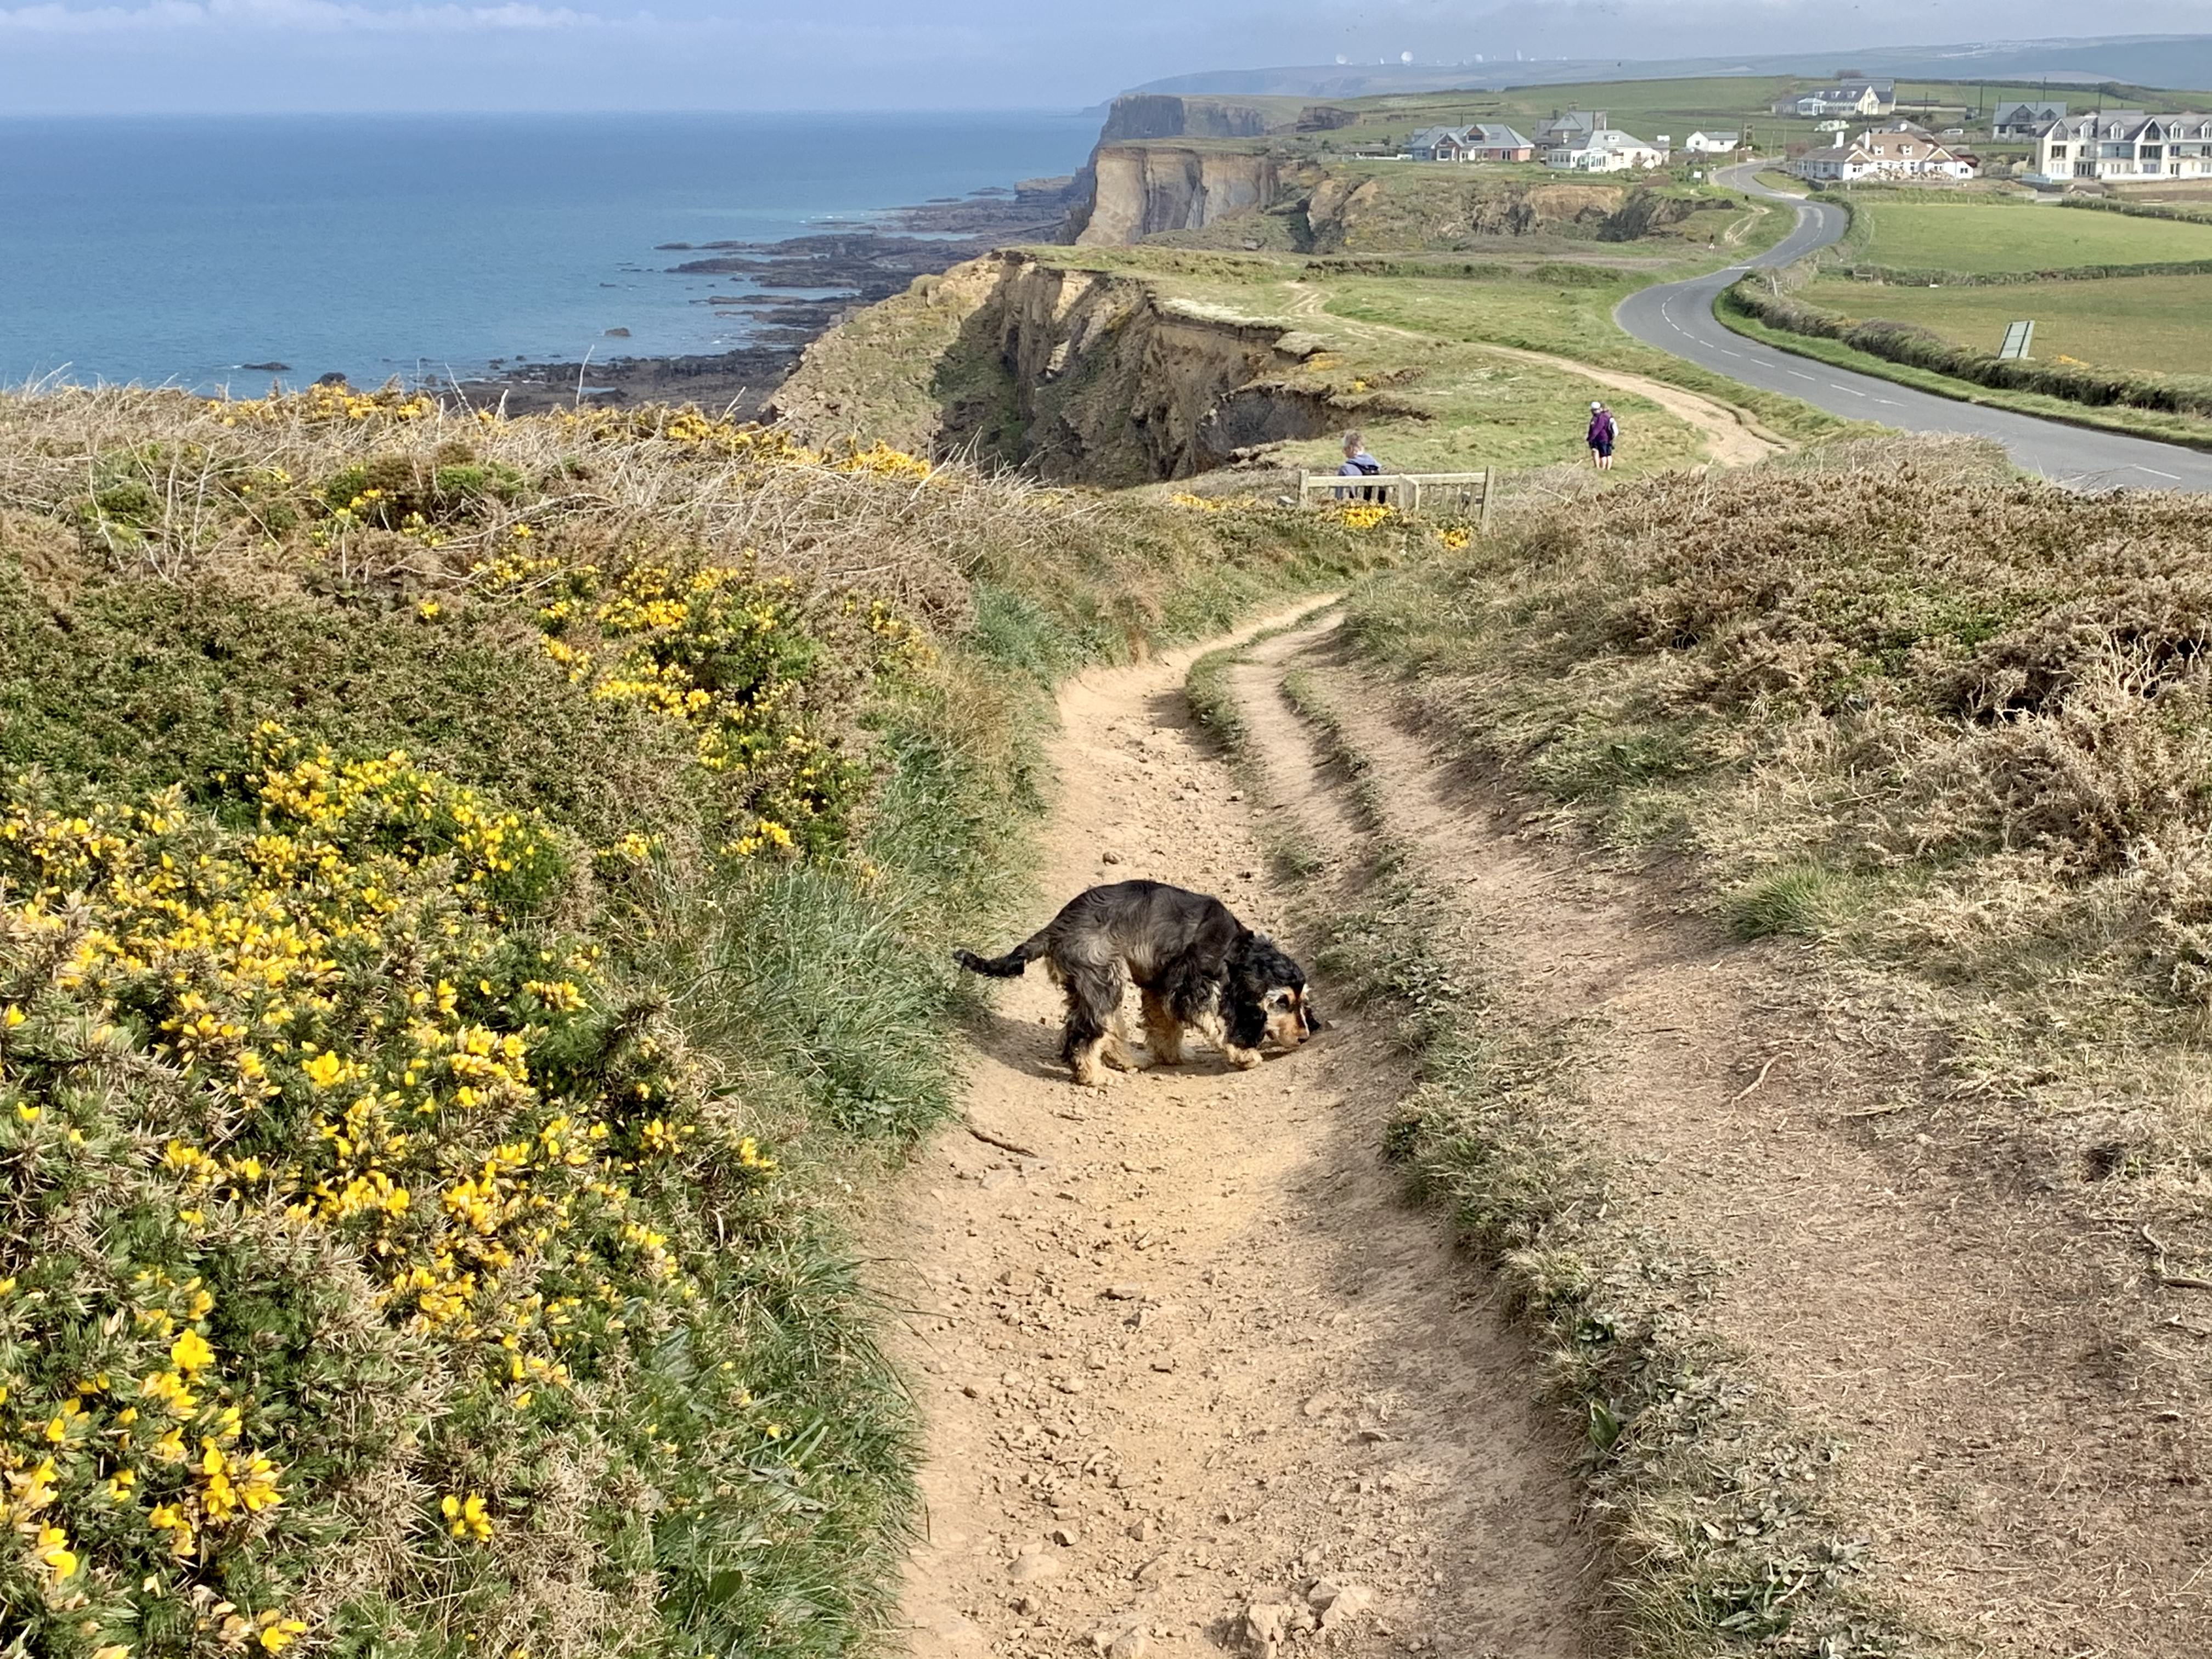 Margo sniffs her way along The South West Coast Path at Widemouth Bay